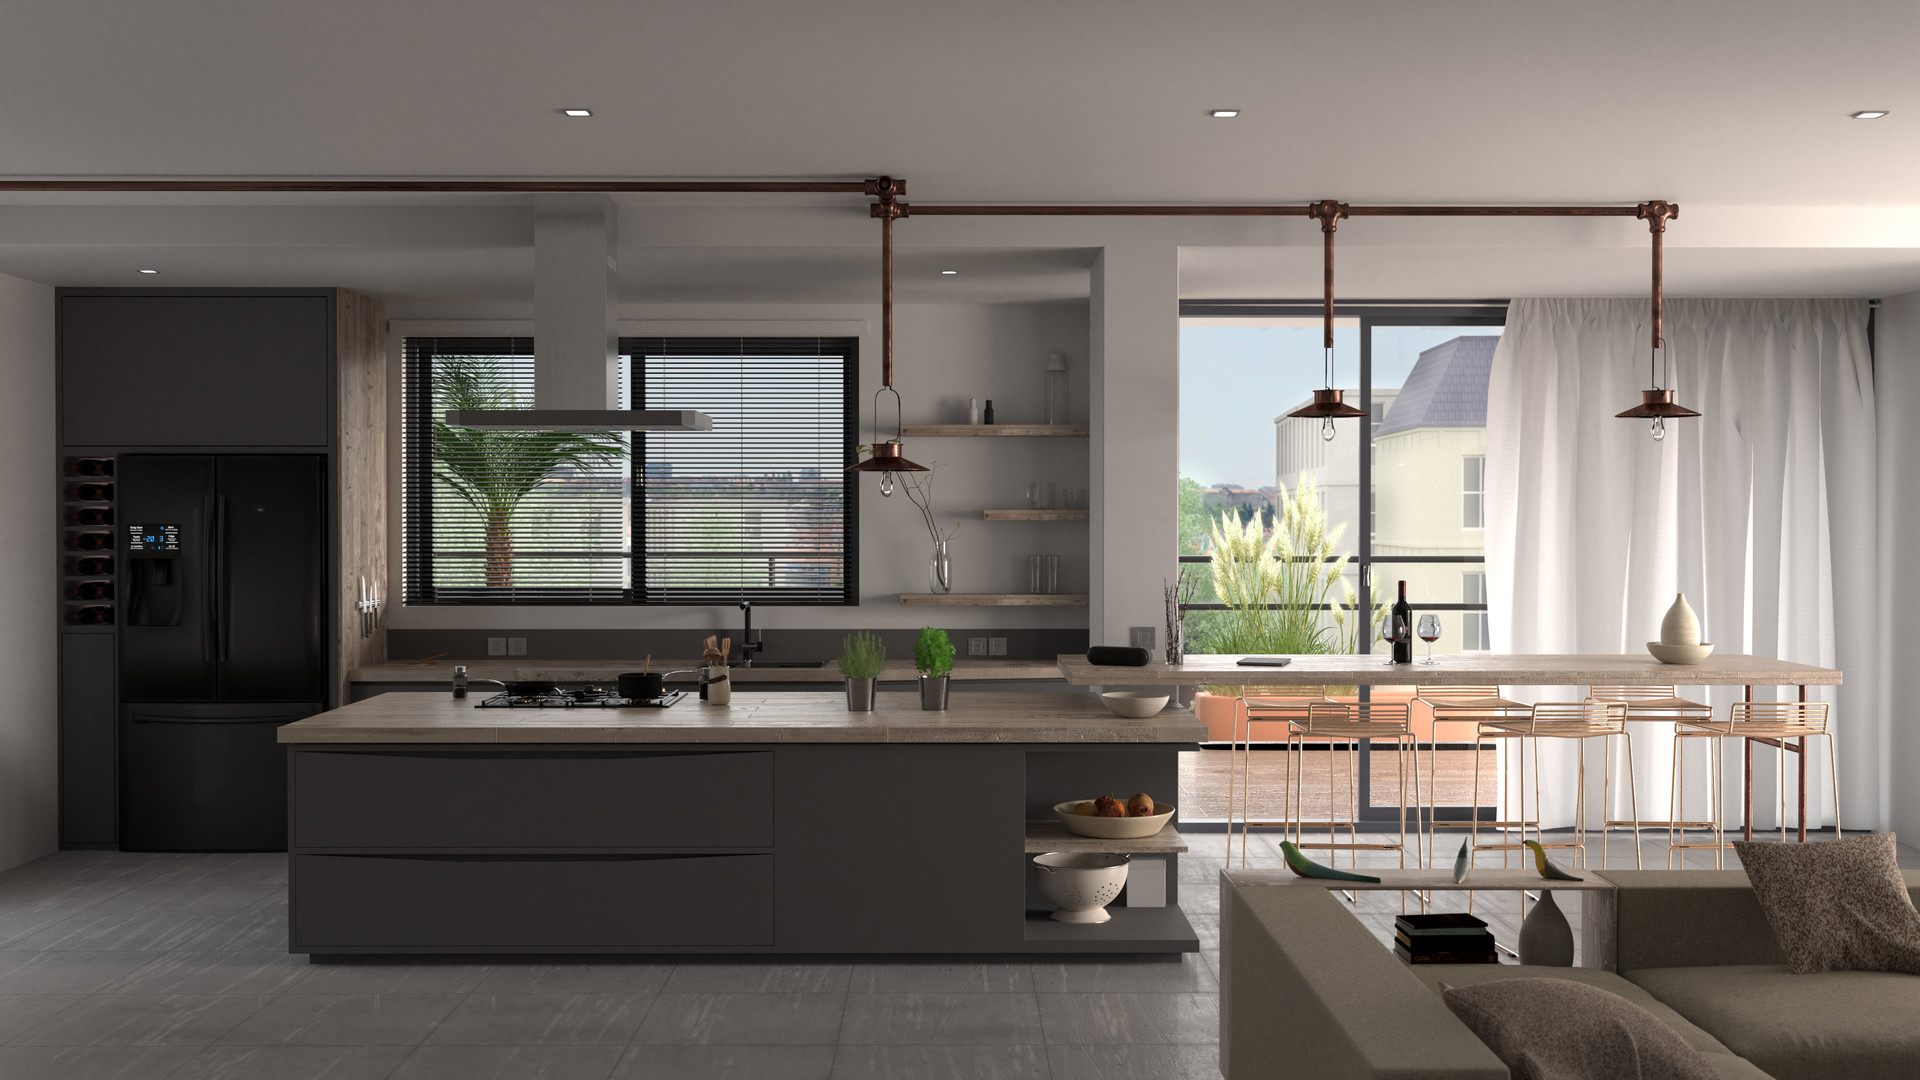 Scandustrial open-concept bungalow kitchen with exposed pipes and dark cabinetry